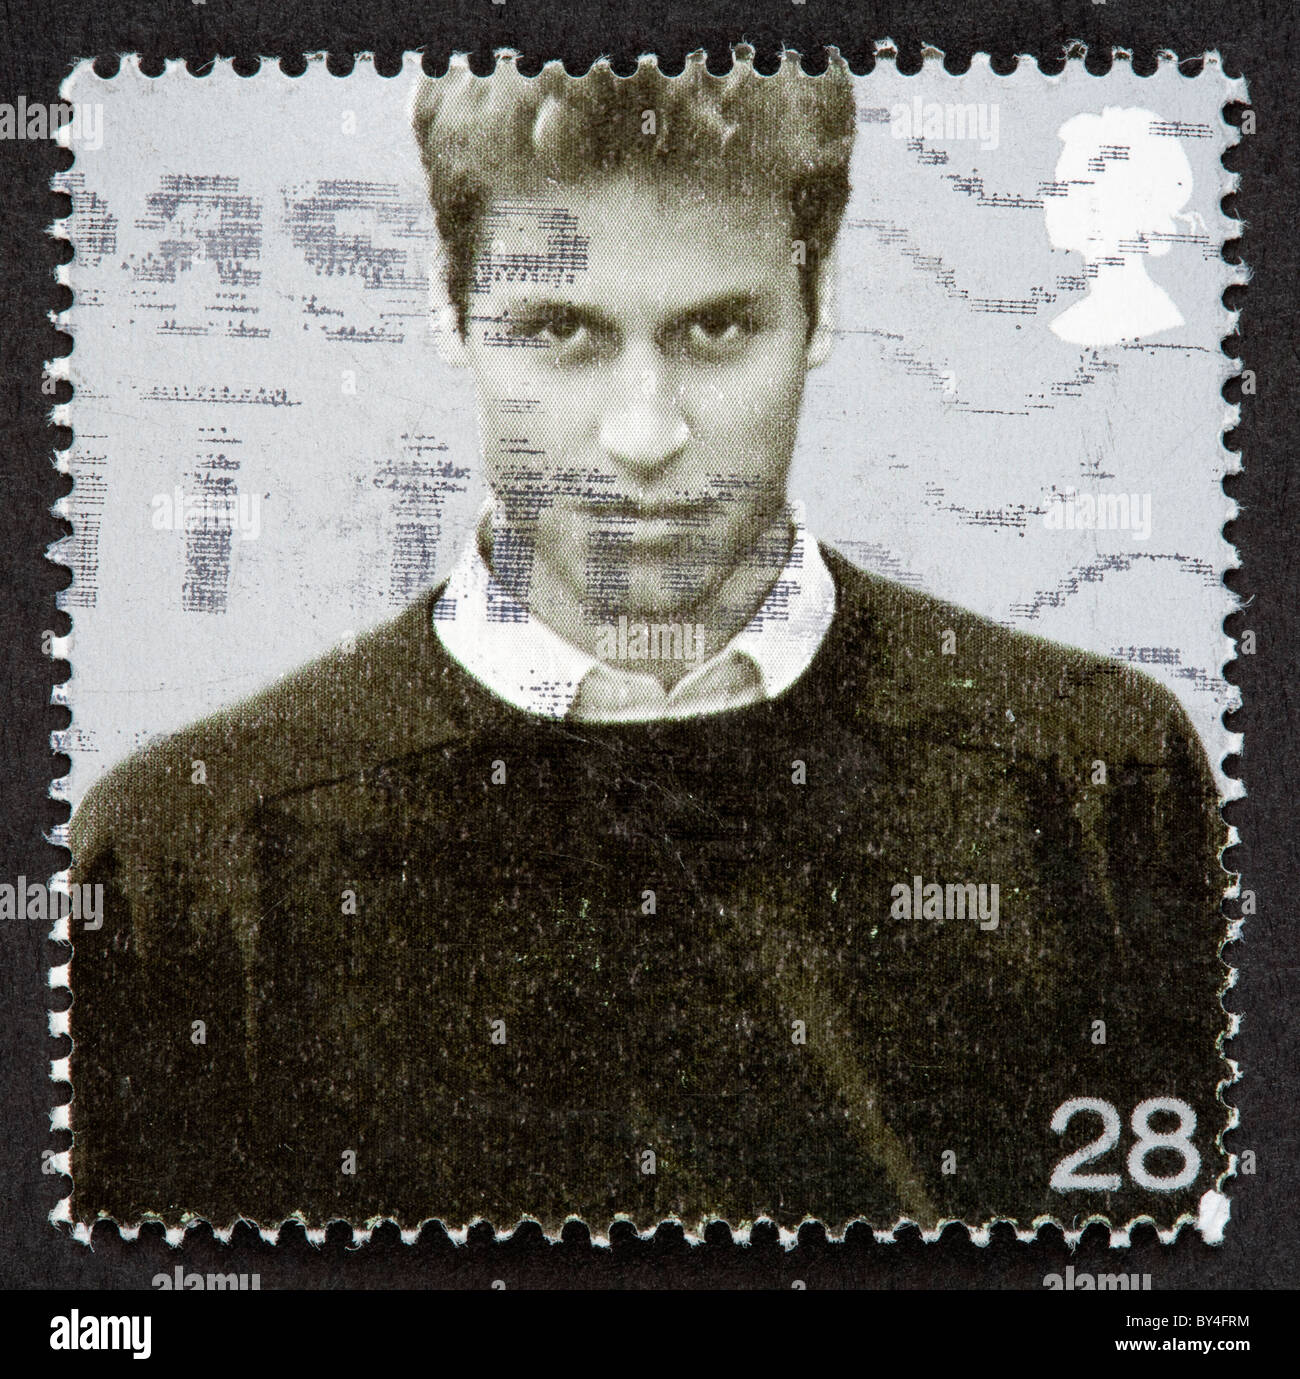 British postage stamp - Stock Image